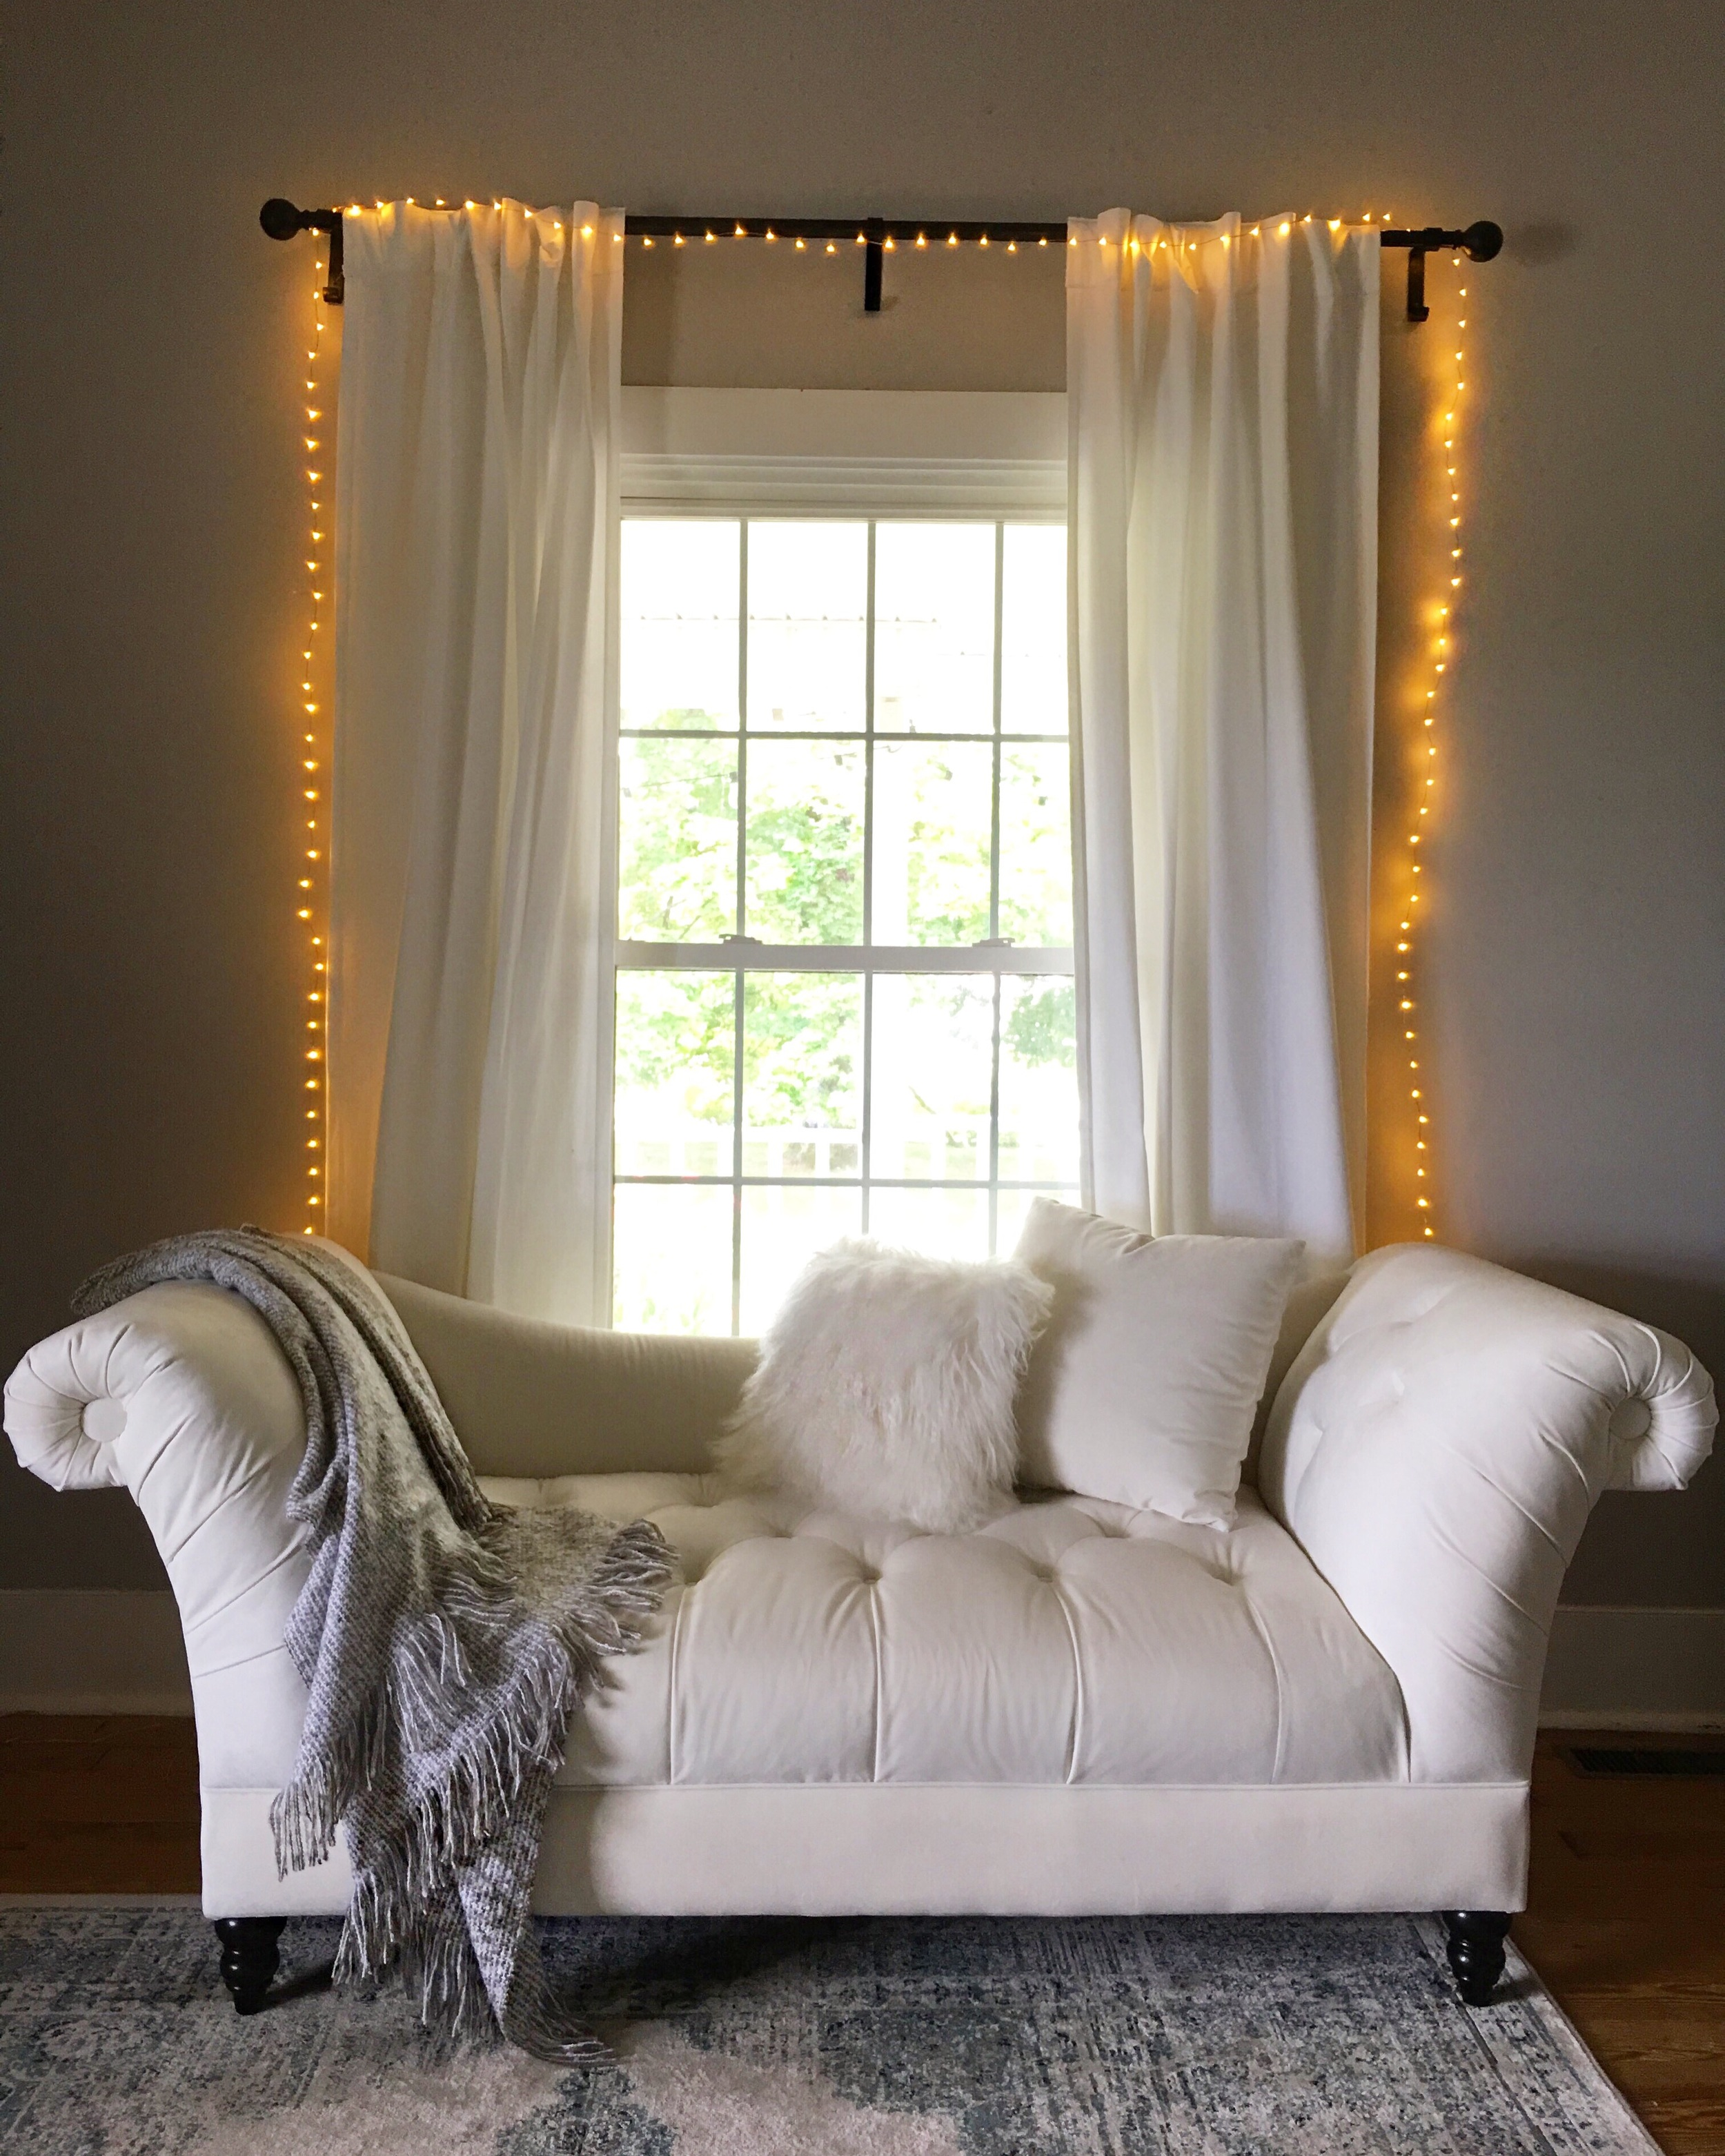 Settee:  Jonathan Louis Furniture   String Lights:  Restoration Hardware    Accent Pillow: Crate & Barrel   Curtains: West Elm